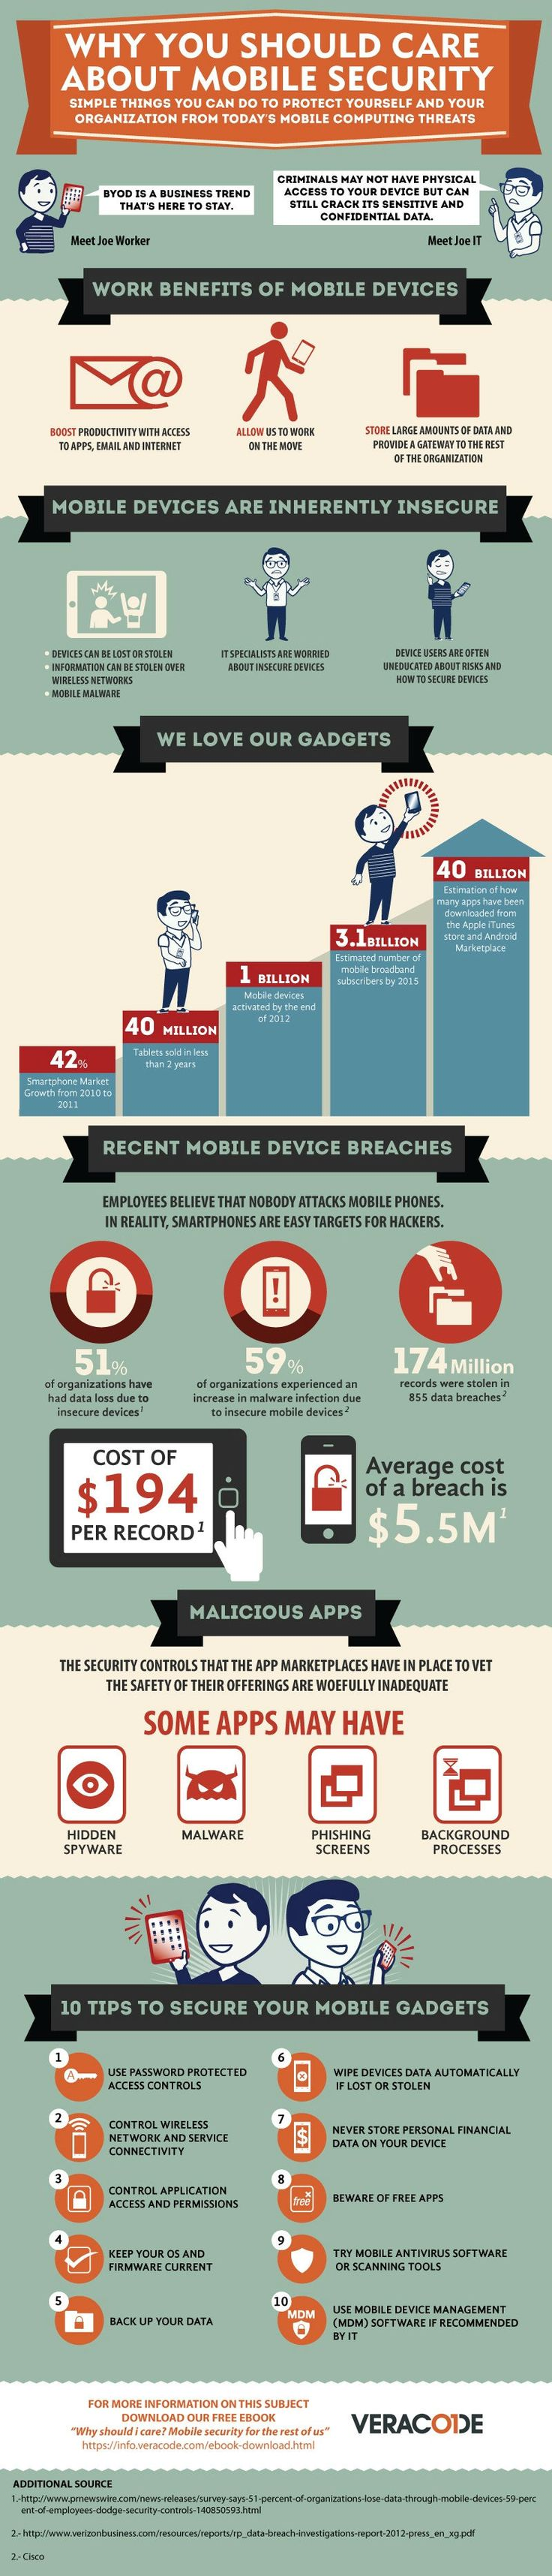 An infographic from security-testing company Veracode explores the rise of data breaches and what it could mean for businesses and consumers.